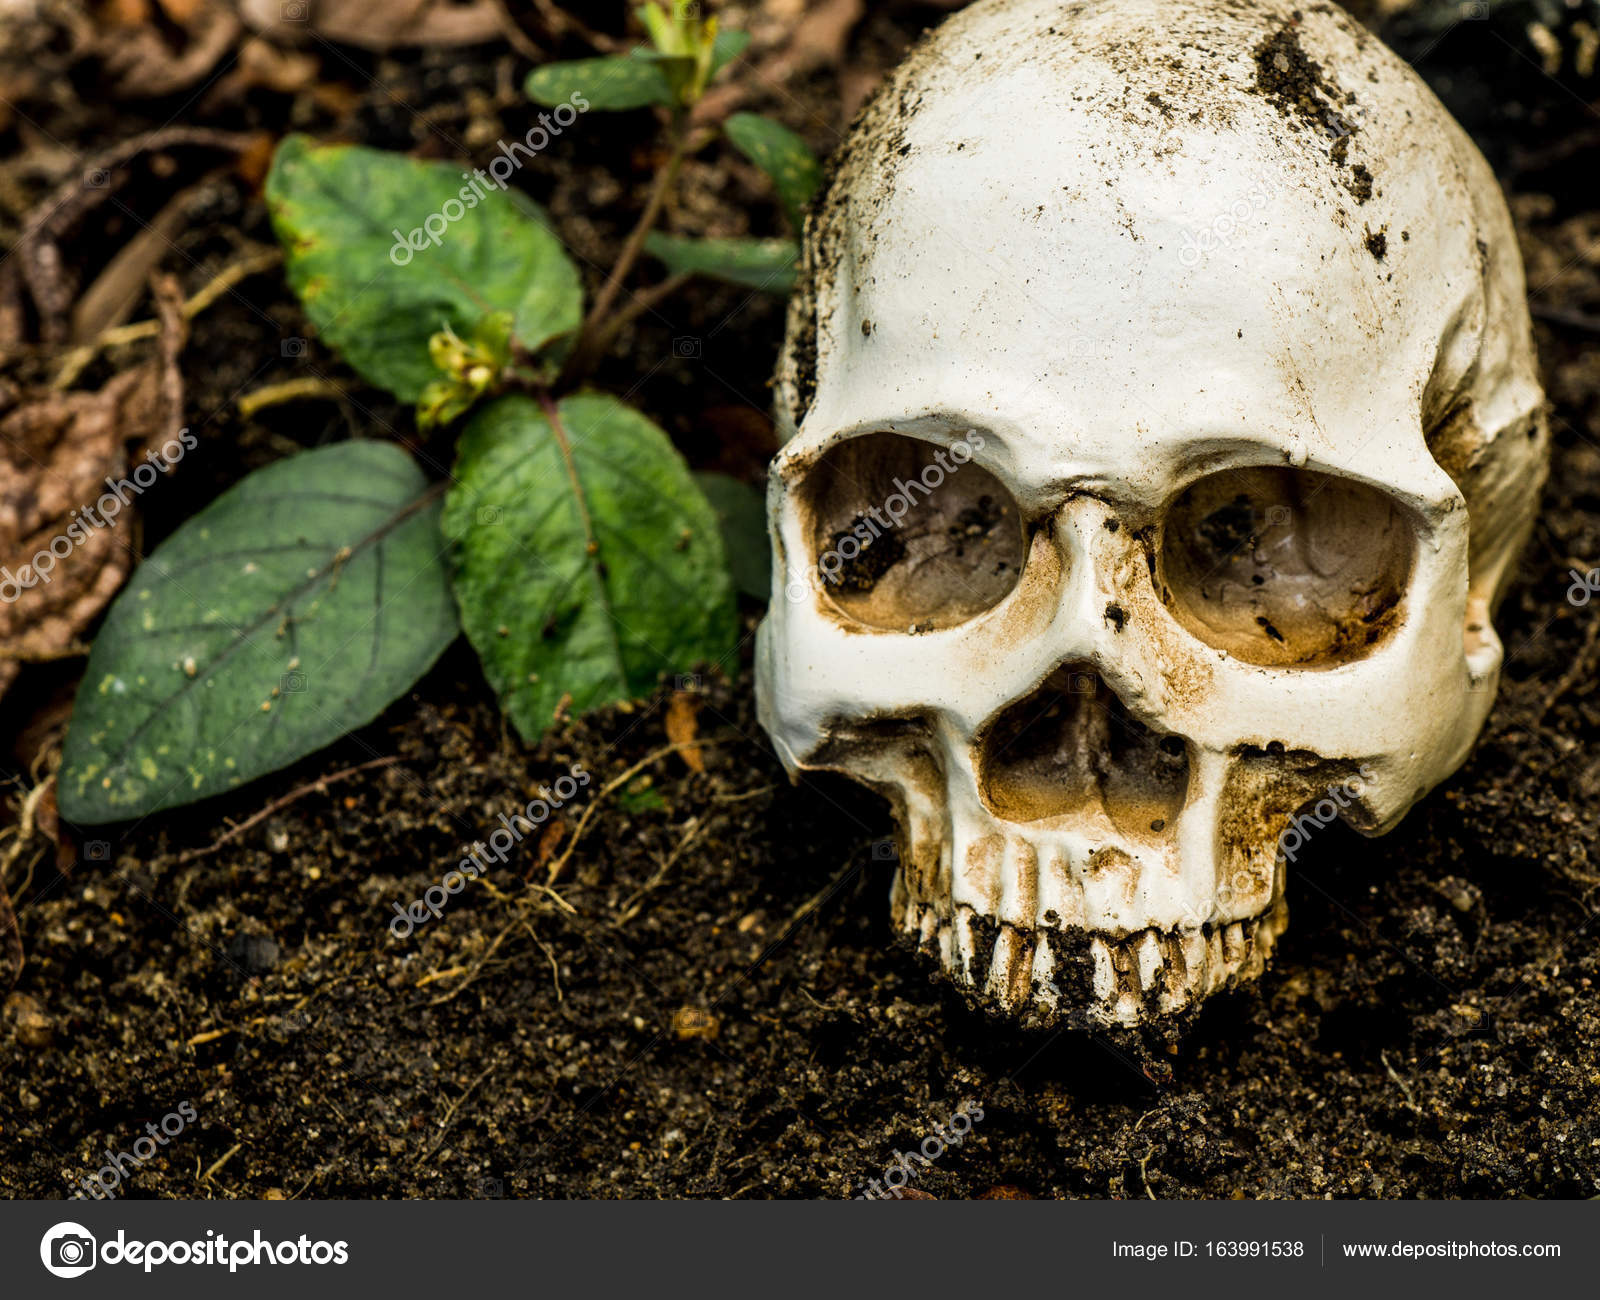 In Front Of Human Skull Buried In The Soile Skull Has Dirt